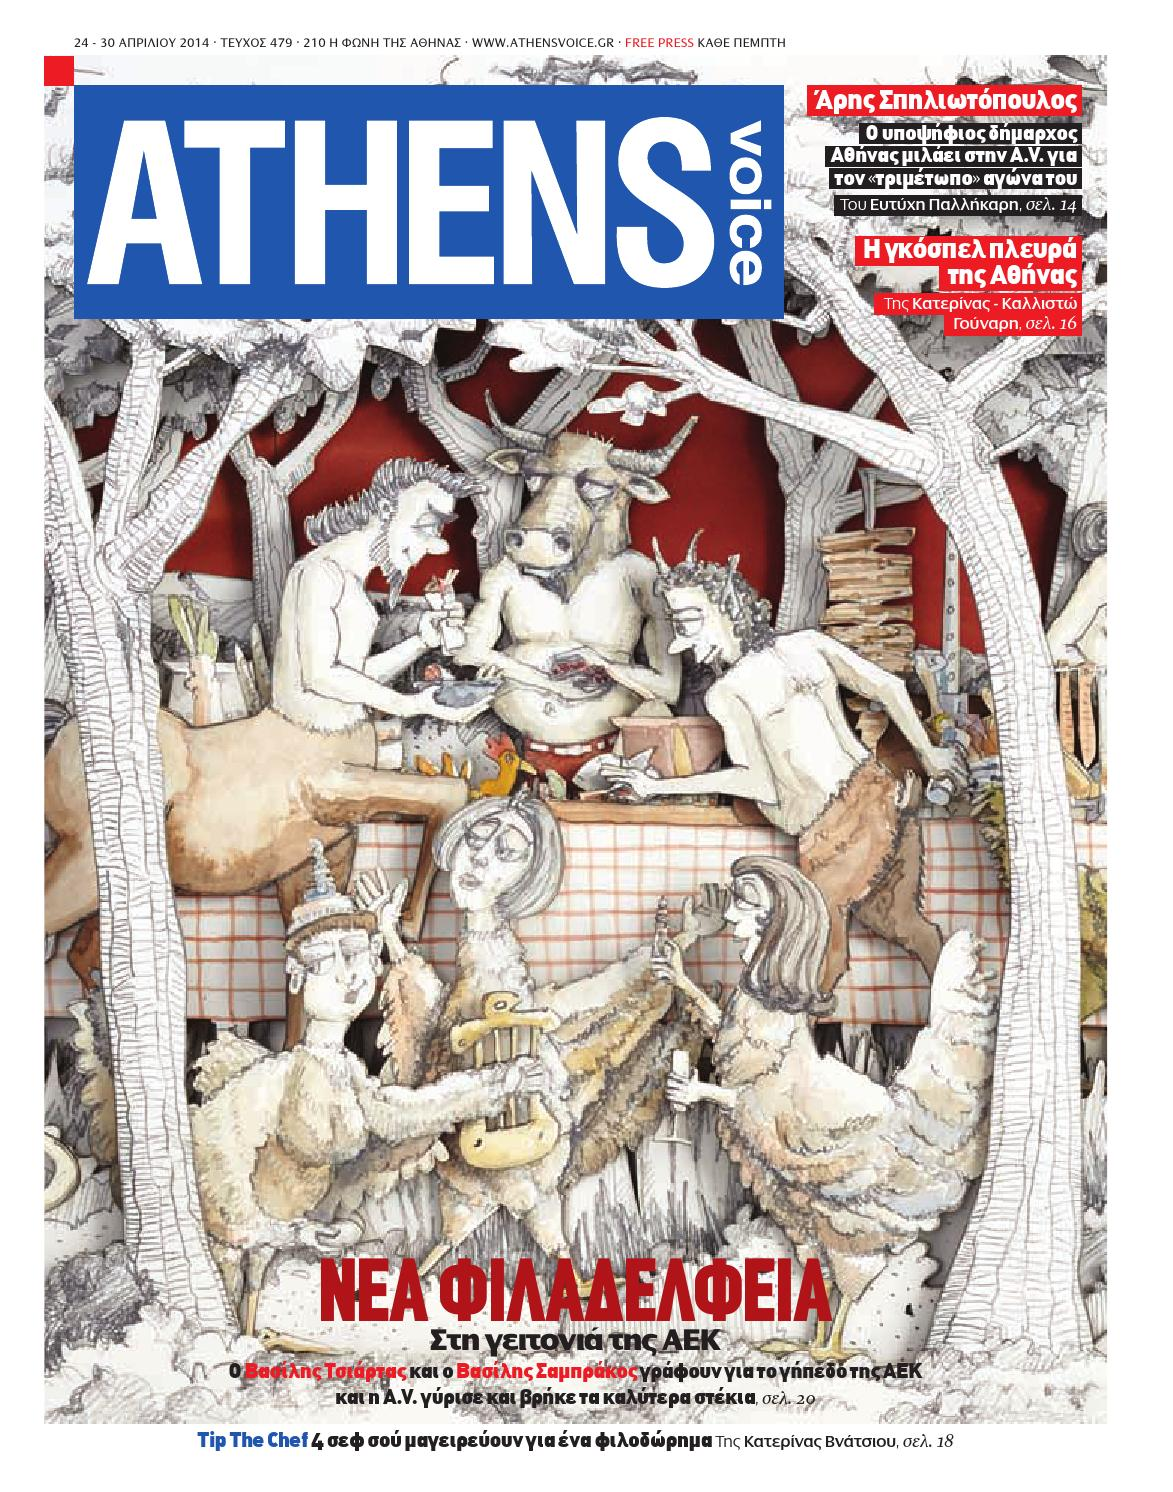 e5e5d4bcd0ac Athens Voice 479 by Athens Voice - issuu